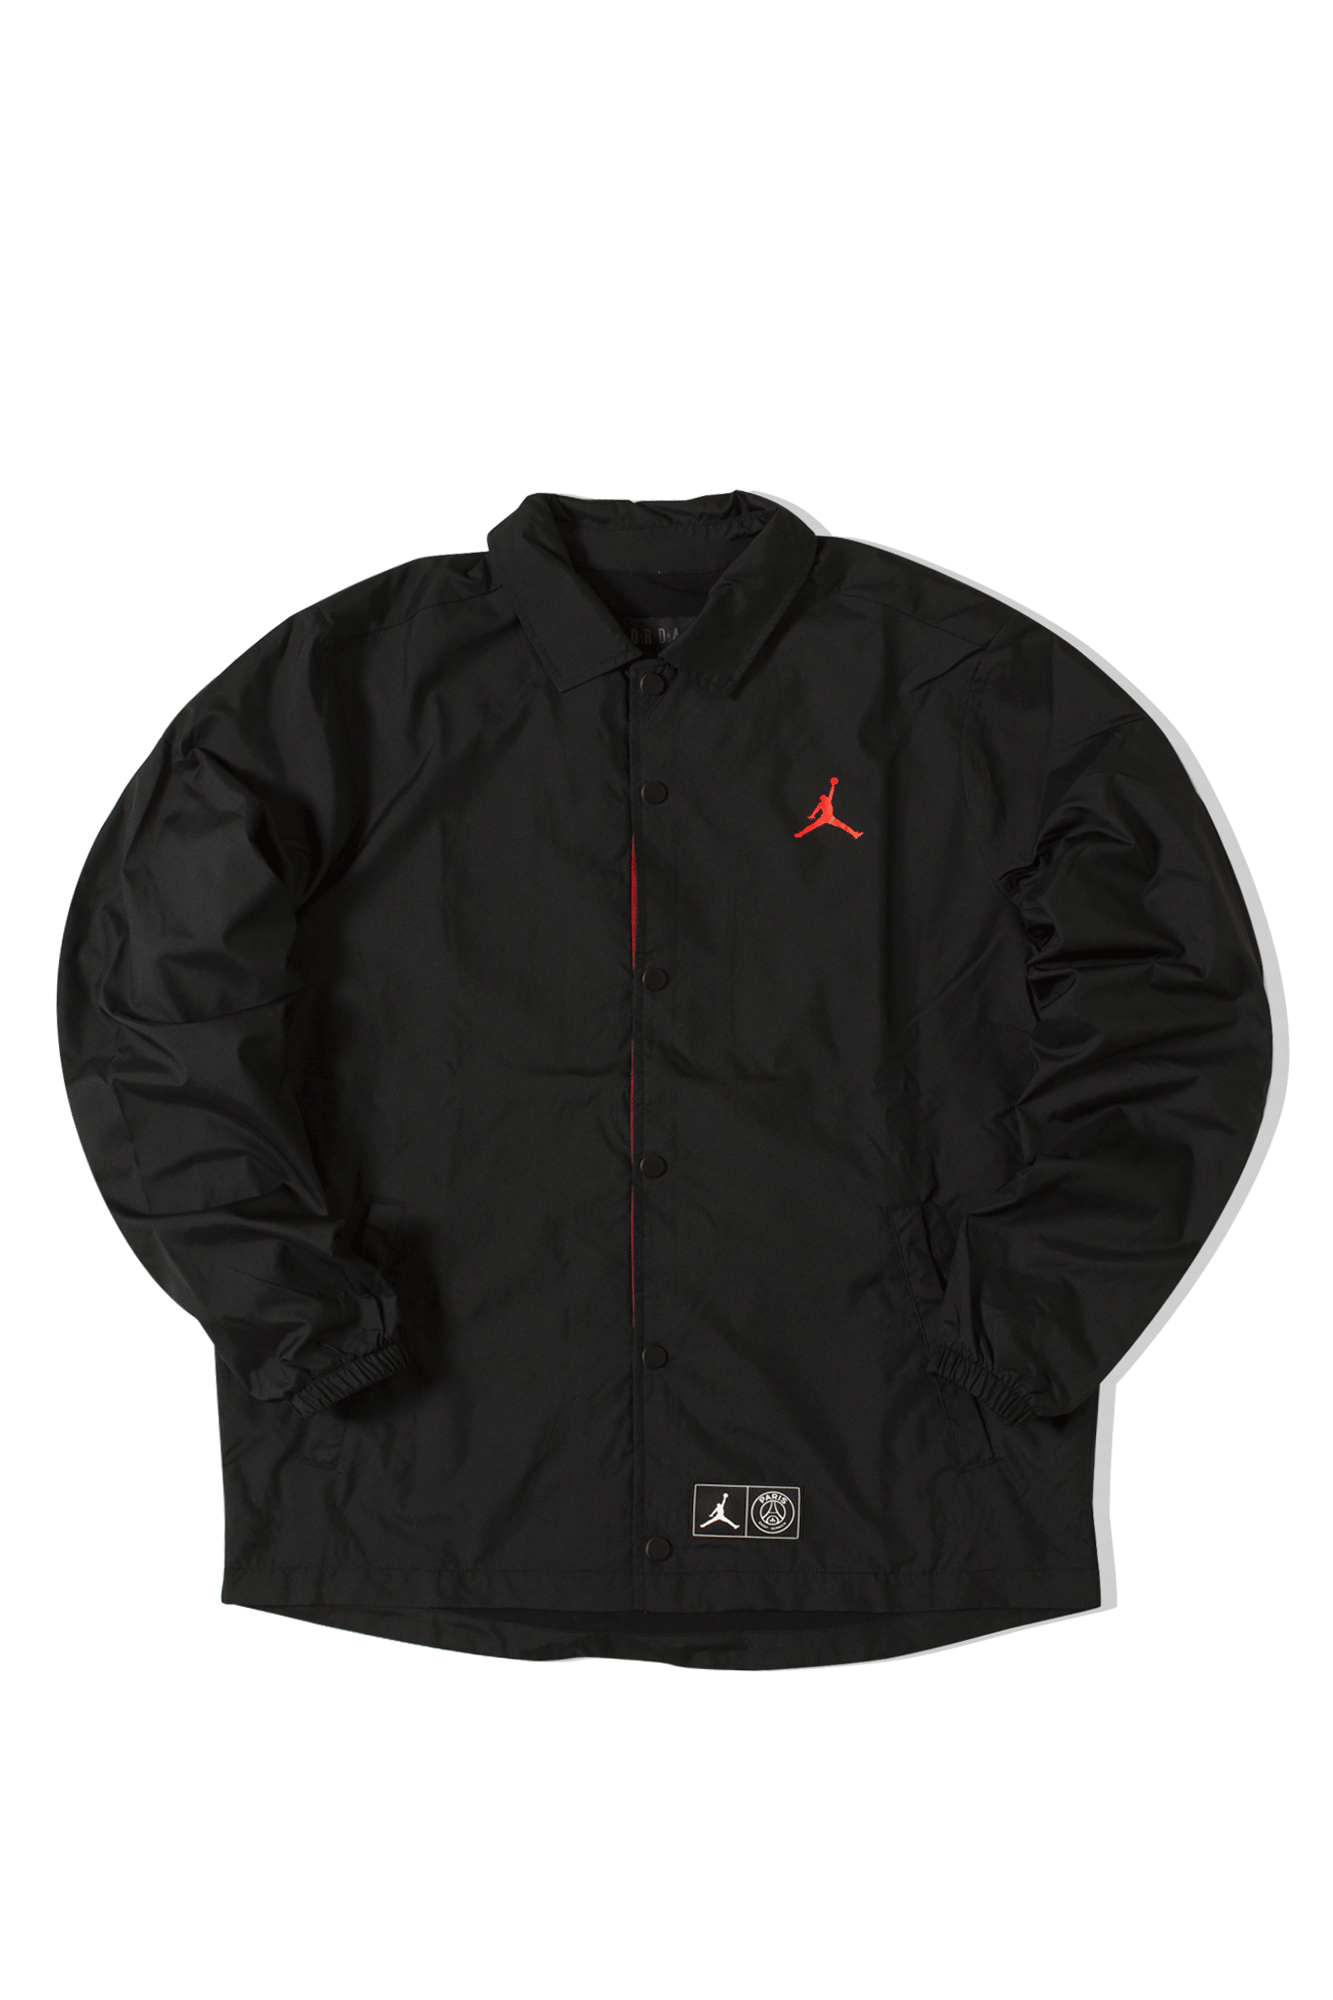 PSG Coaches JKT Black